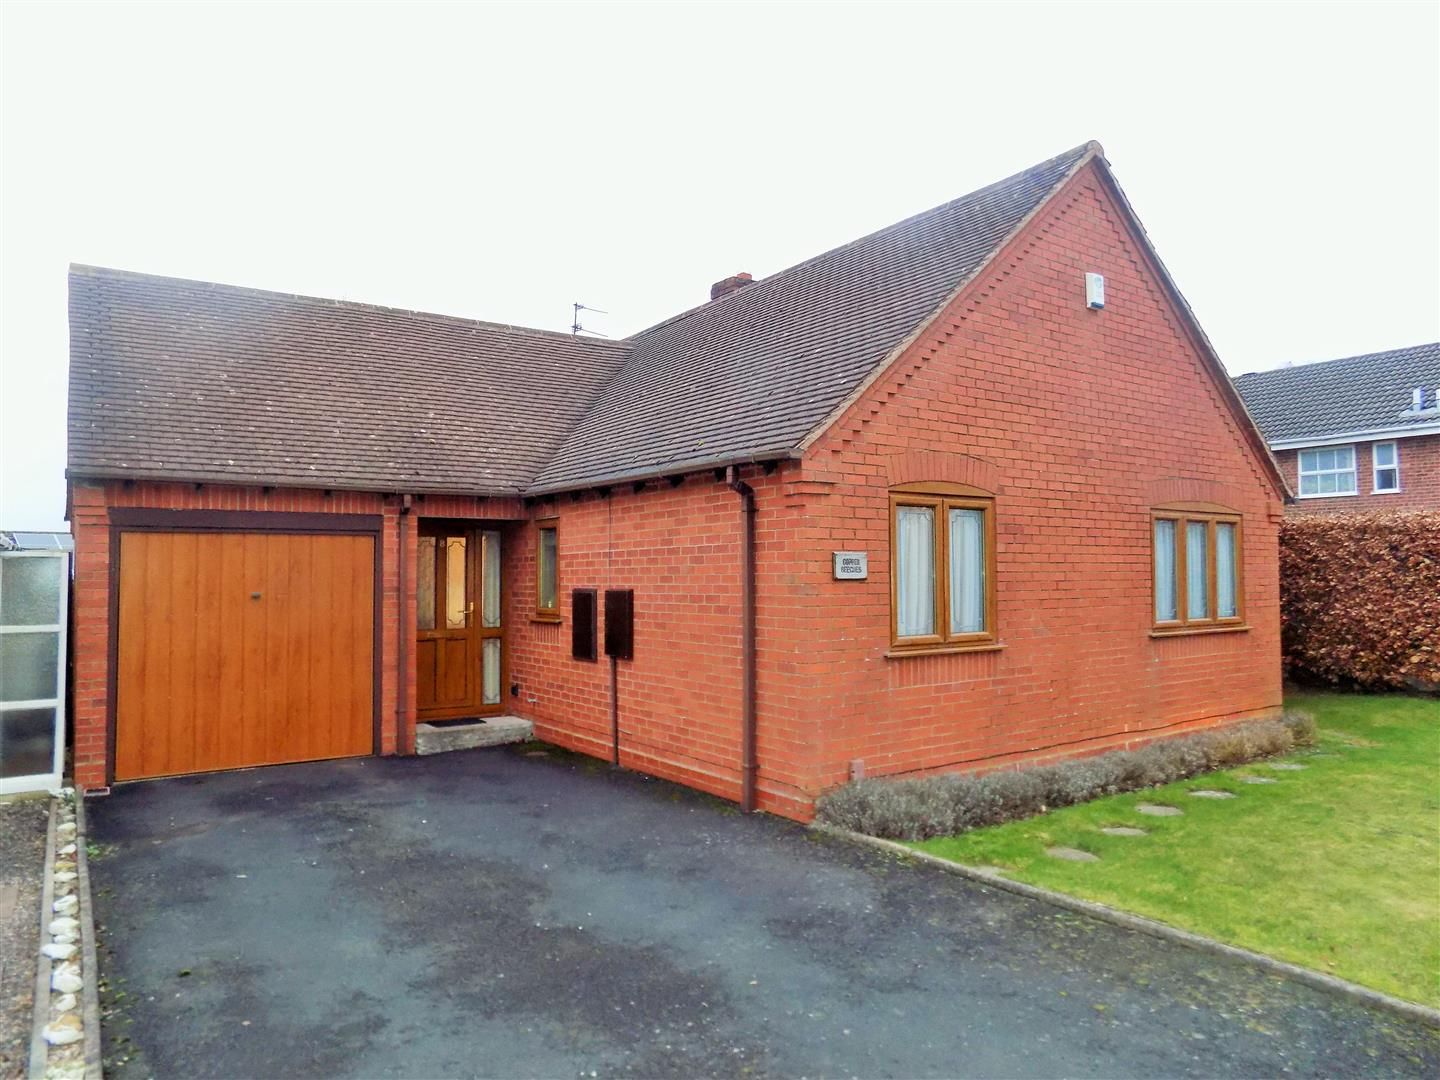 2 bed detached-bungalow for sale, B63